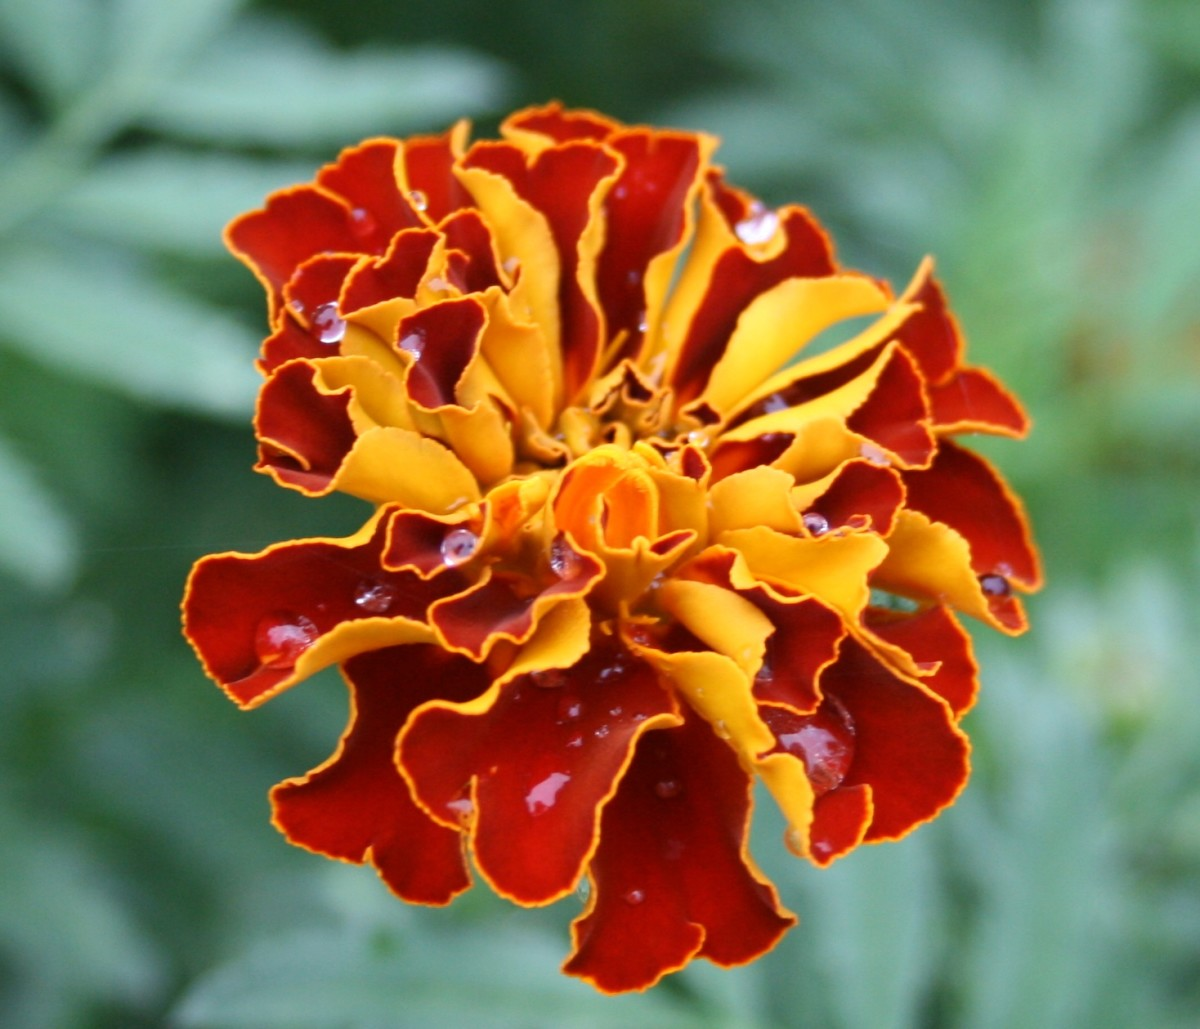 Most French marigolds bloom in combinations of red, yellow and orange.